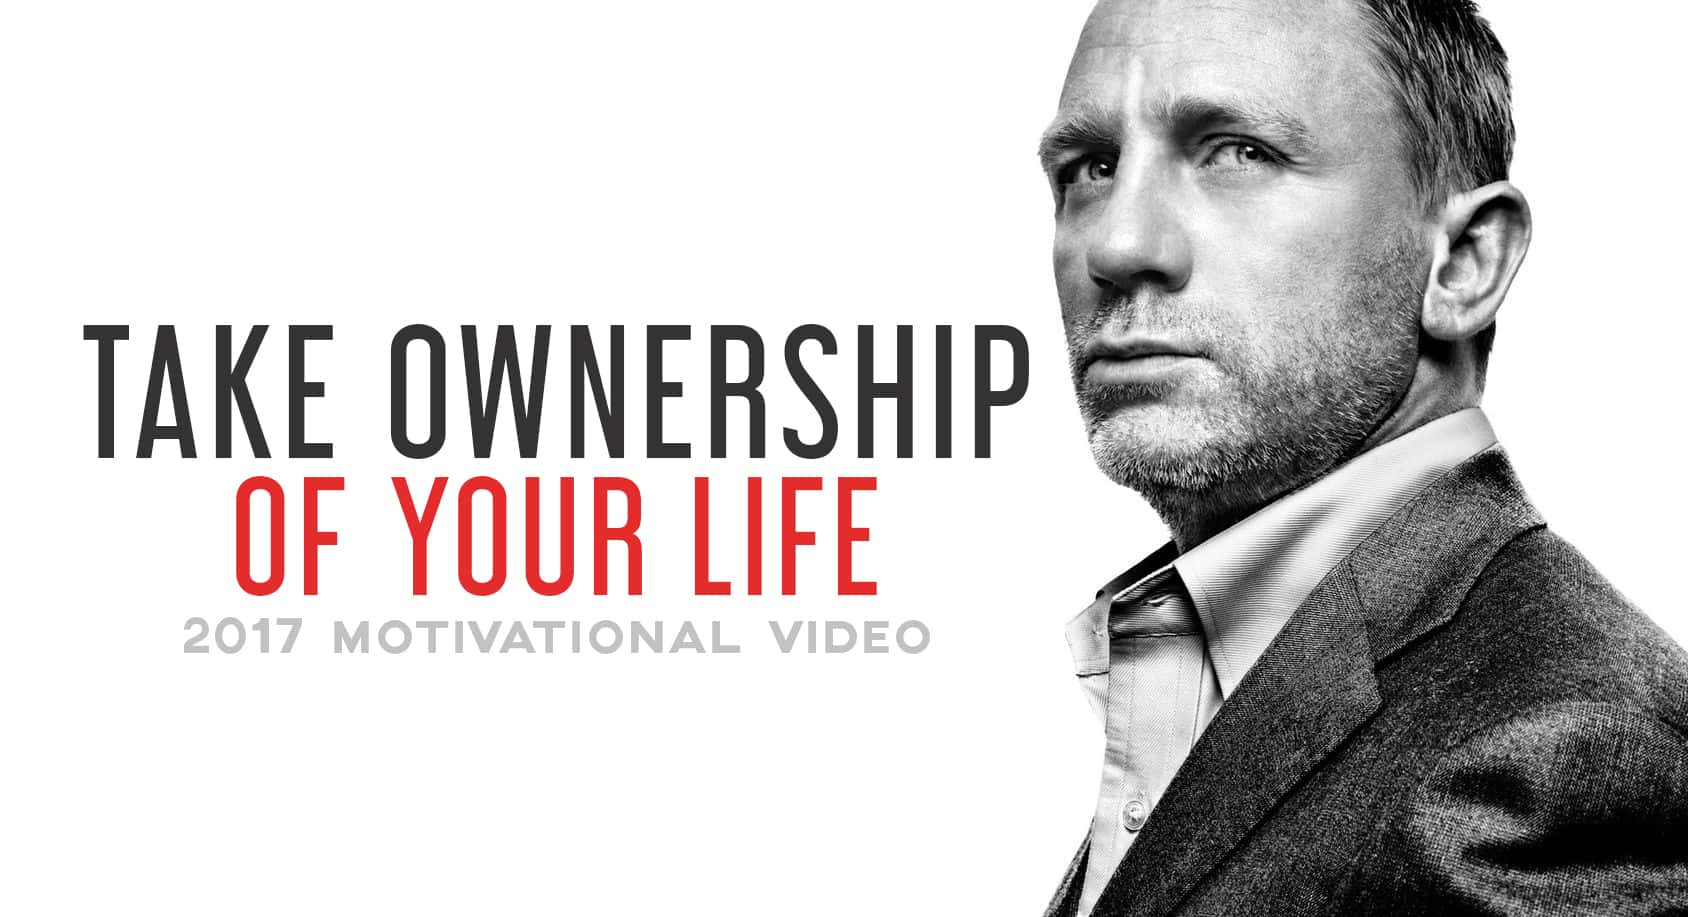 take ownership of your life, motivationgrid